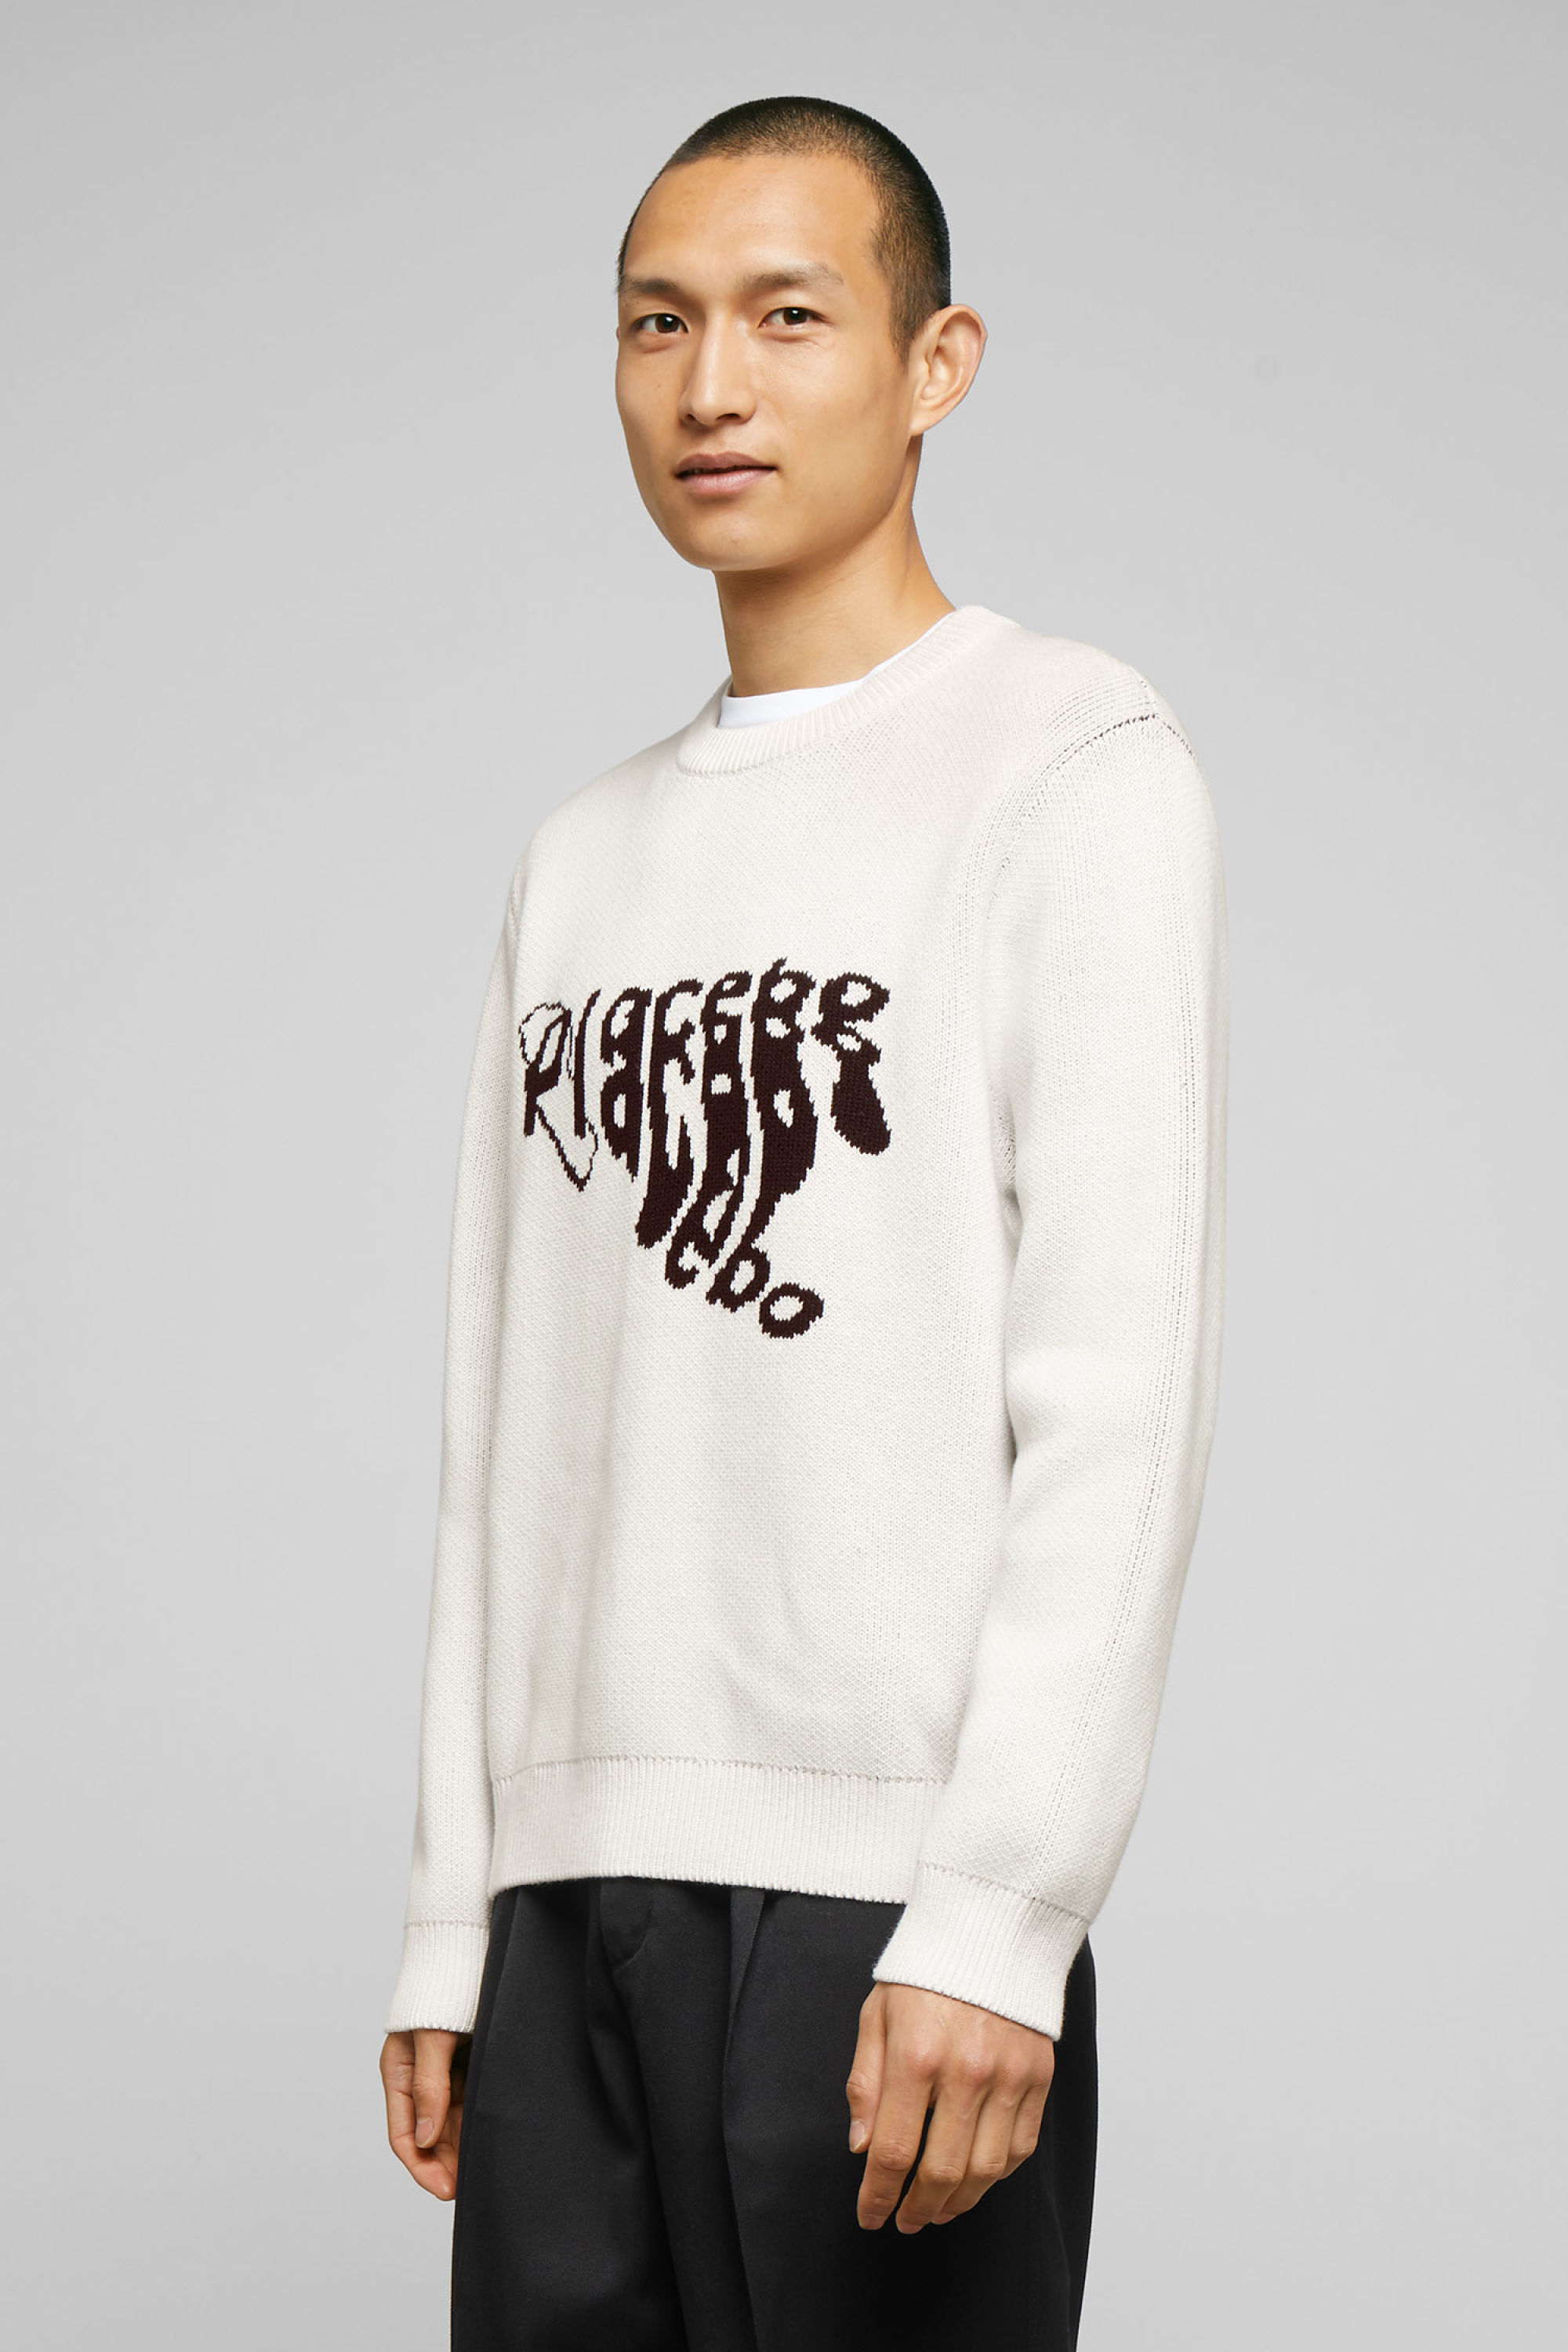 Weekday Johan Placebo Jaquard Sweater